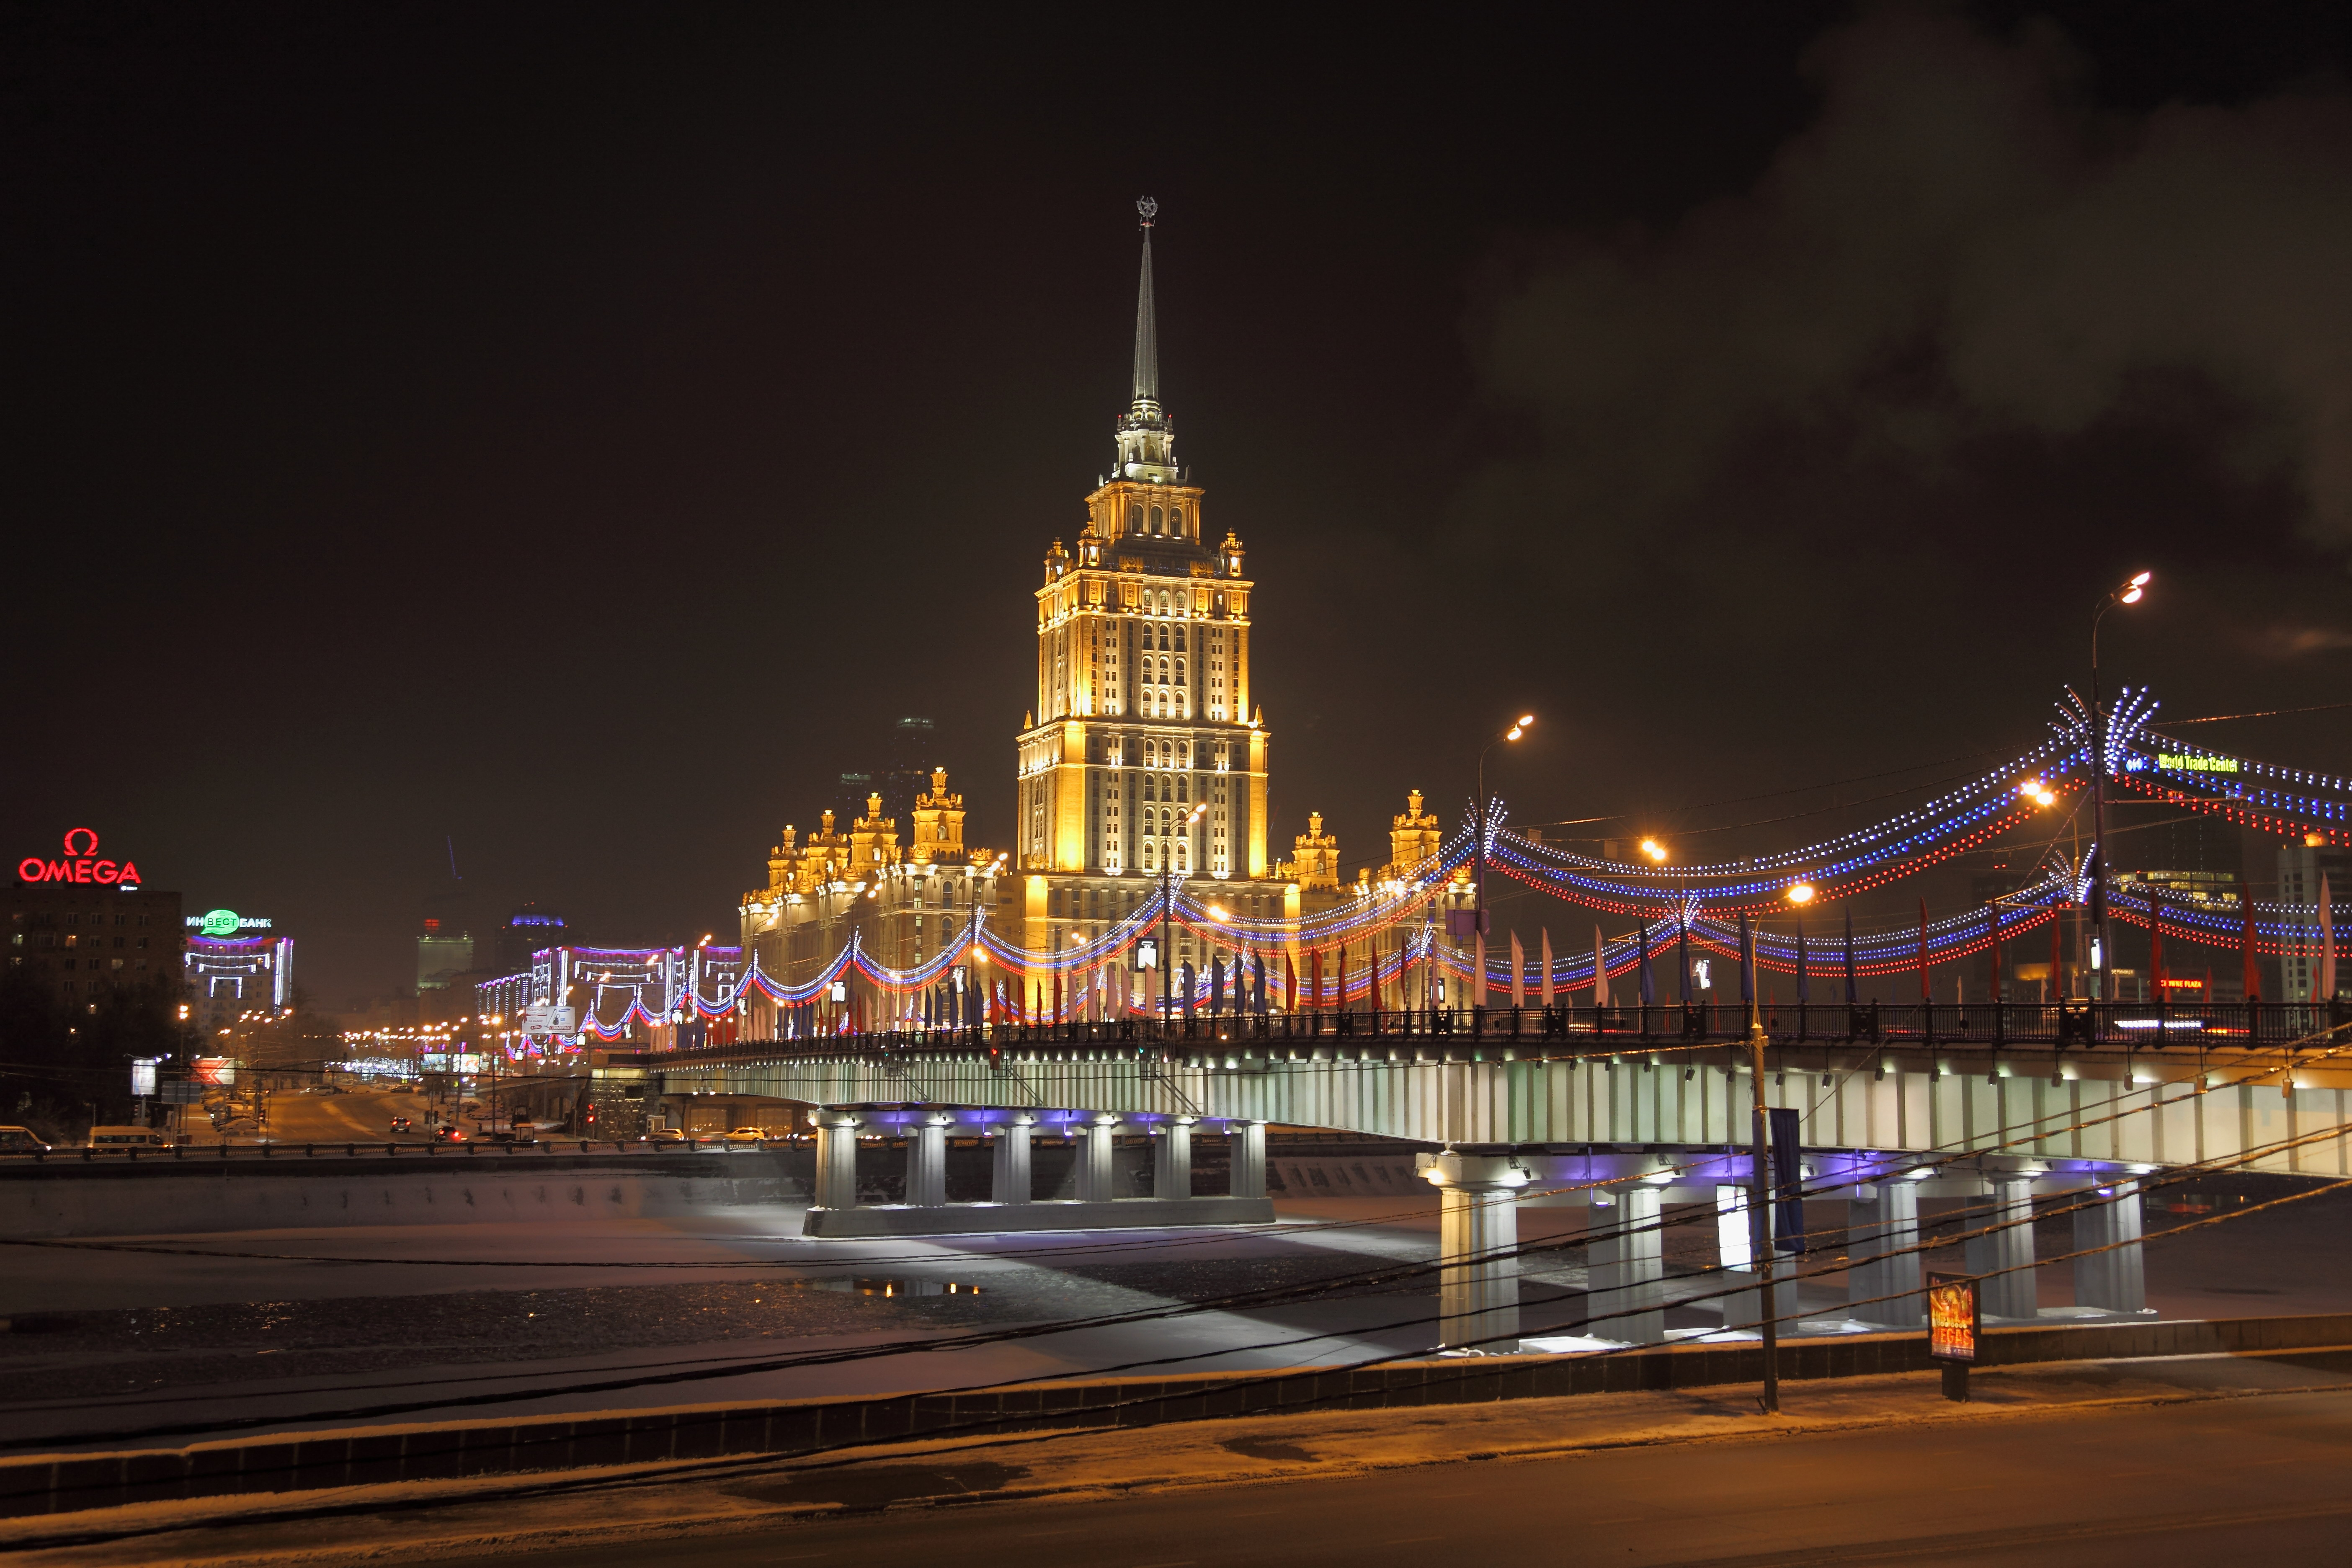 105 moscow hd wallpapers background images wallpaper abyss - 4k wallpaper russia ...